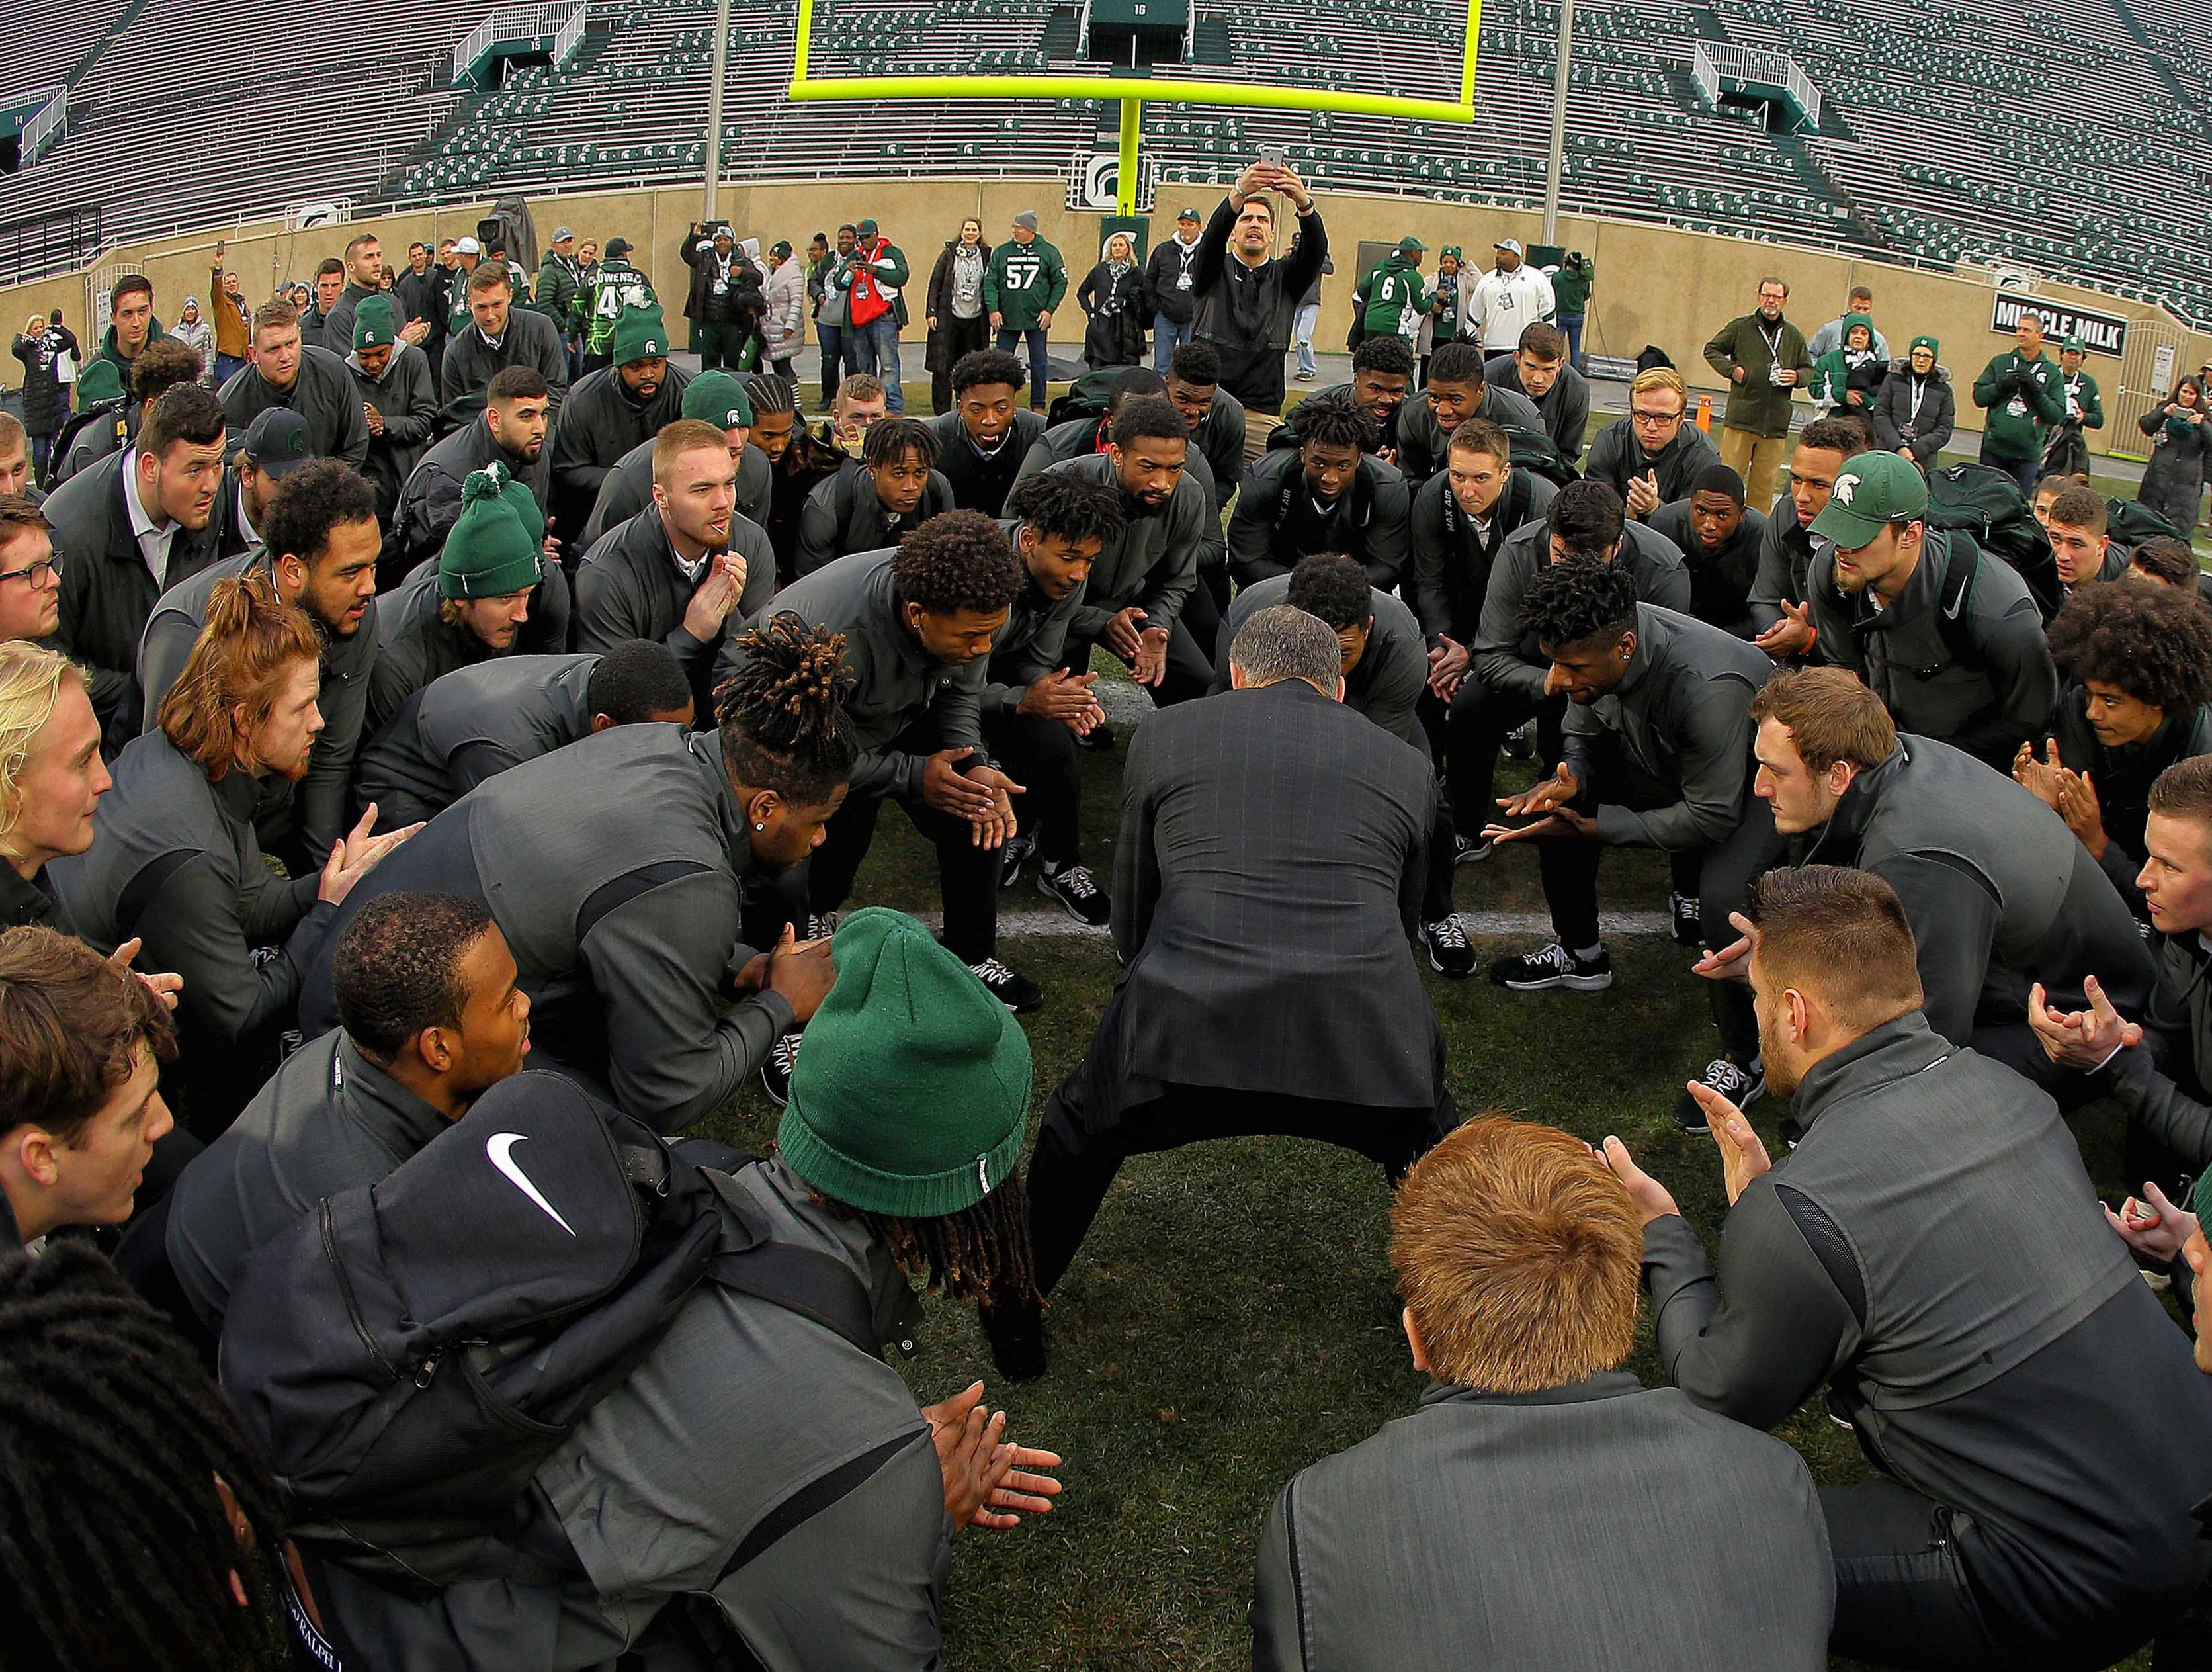 Nov 24, 2018; East Lansing, MI, USA; Michigan State Spartans head coach Mark Dantonio huddles his team in end zone prior to a game against the Rutgers Scarlet Knights at Spartan Stadium. Mandatory Credit: Mike Carter-USA TODAY Sports